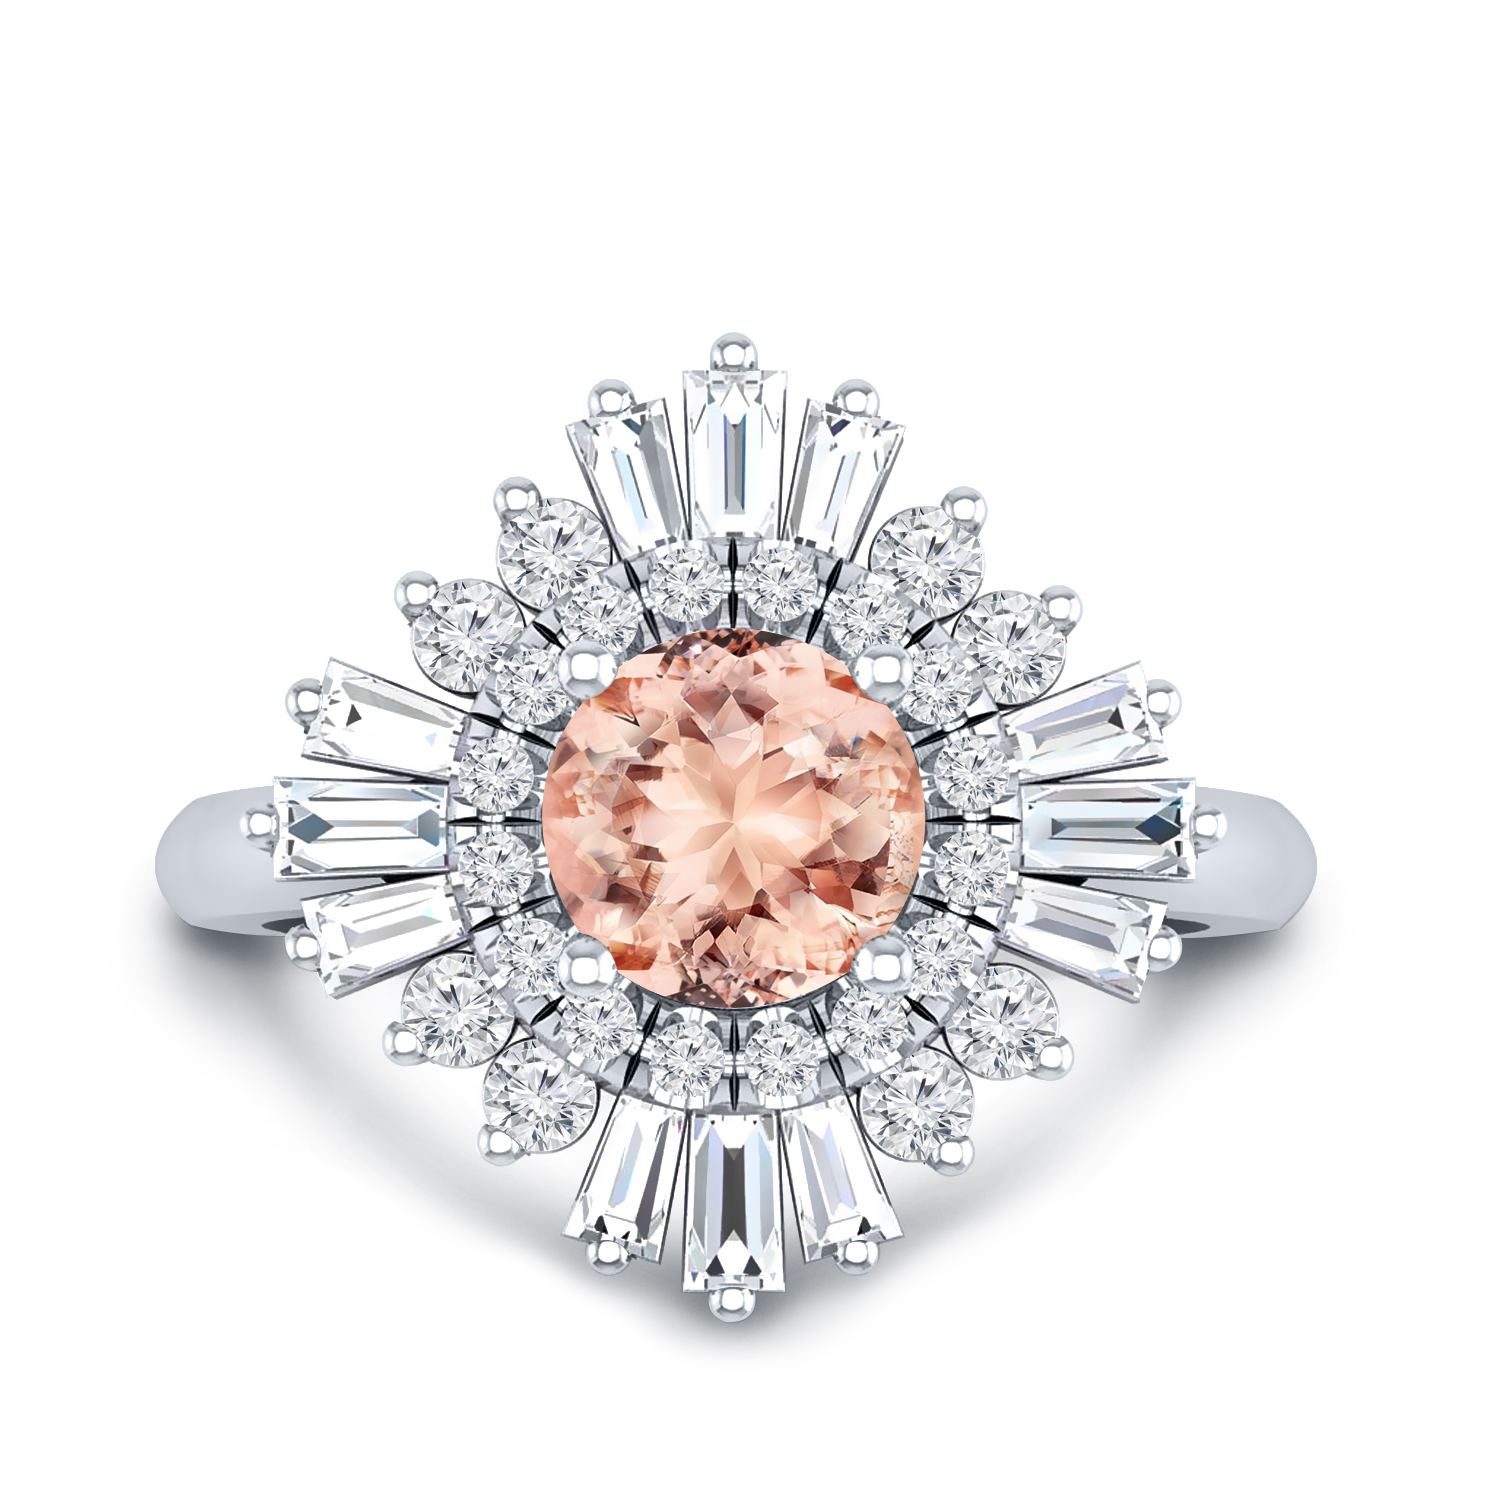 CHARLESTON Ballerina Halo Morganite Engagement Ring In 14K White Gold With 1.00 Carat Round Stone